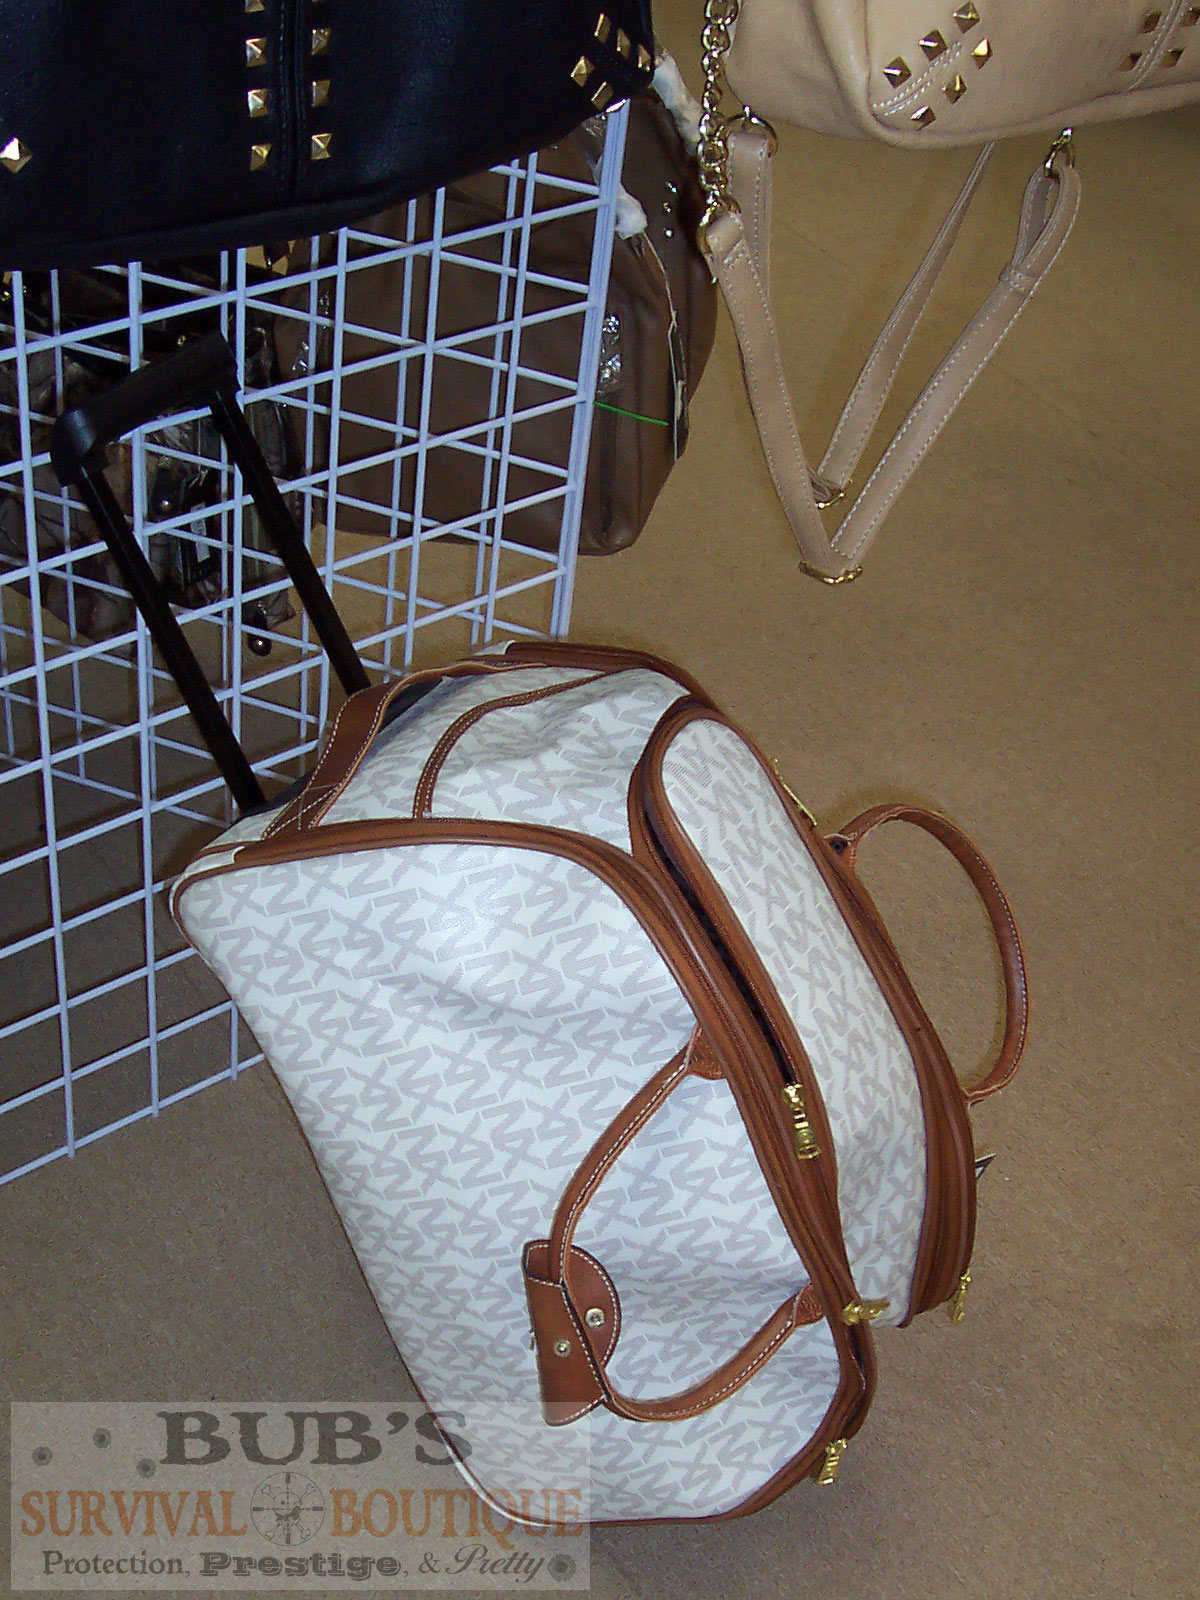 Conceal carry tote with wheels and handle for your gun owners on the go.